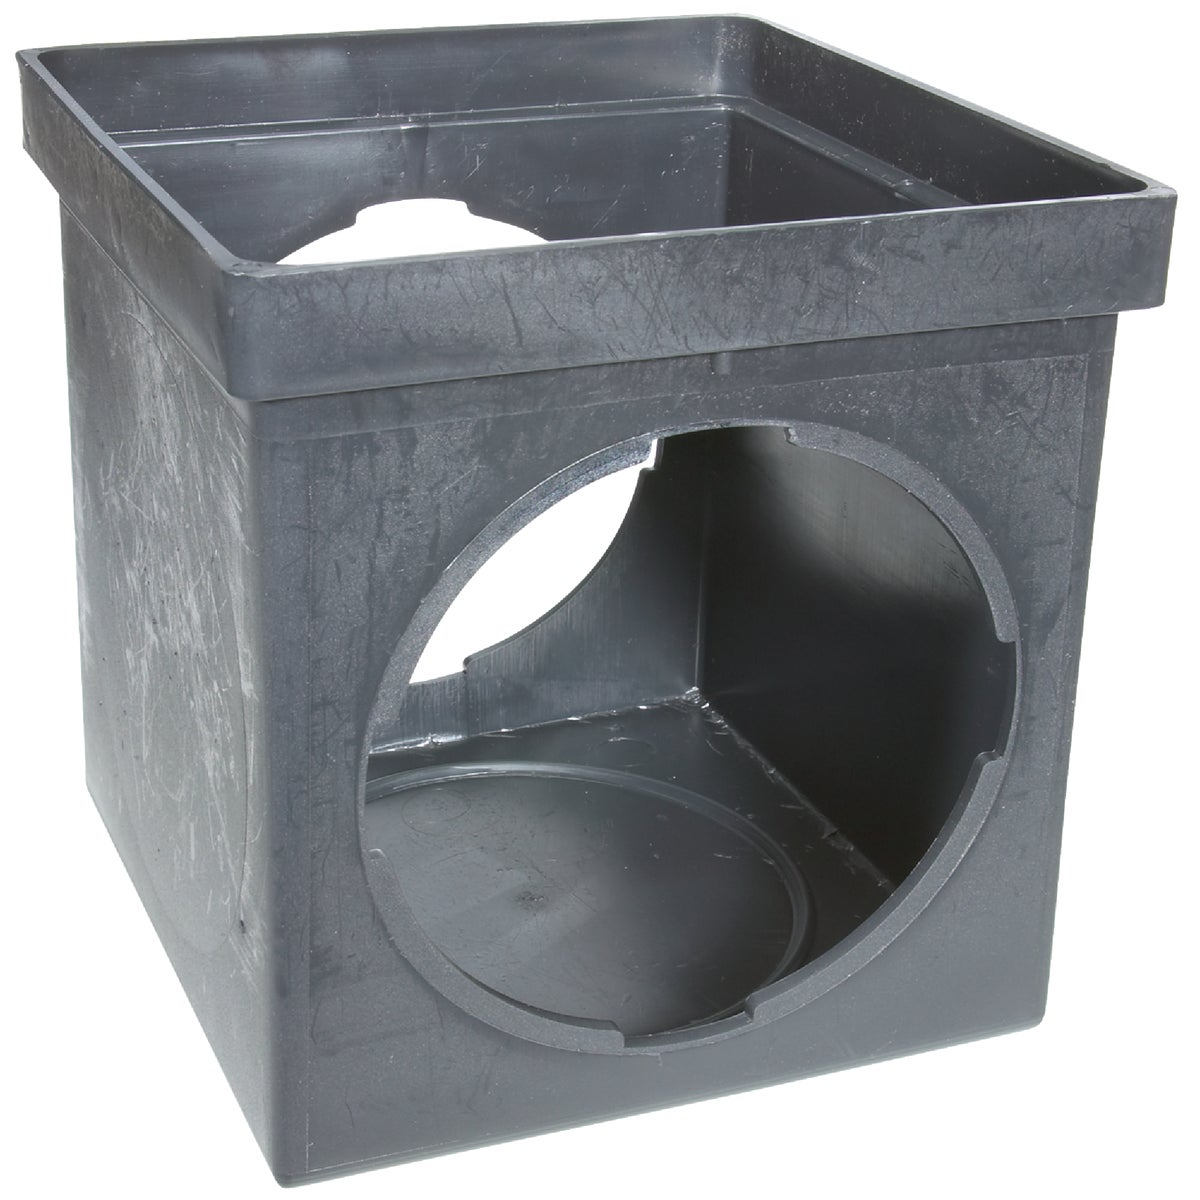 9X9 CATCH BASIN - 900 by National Diversified